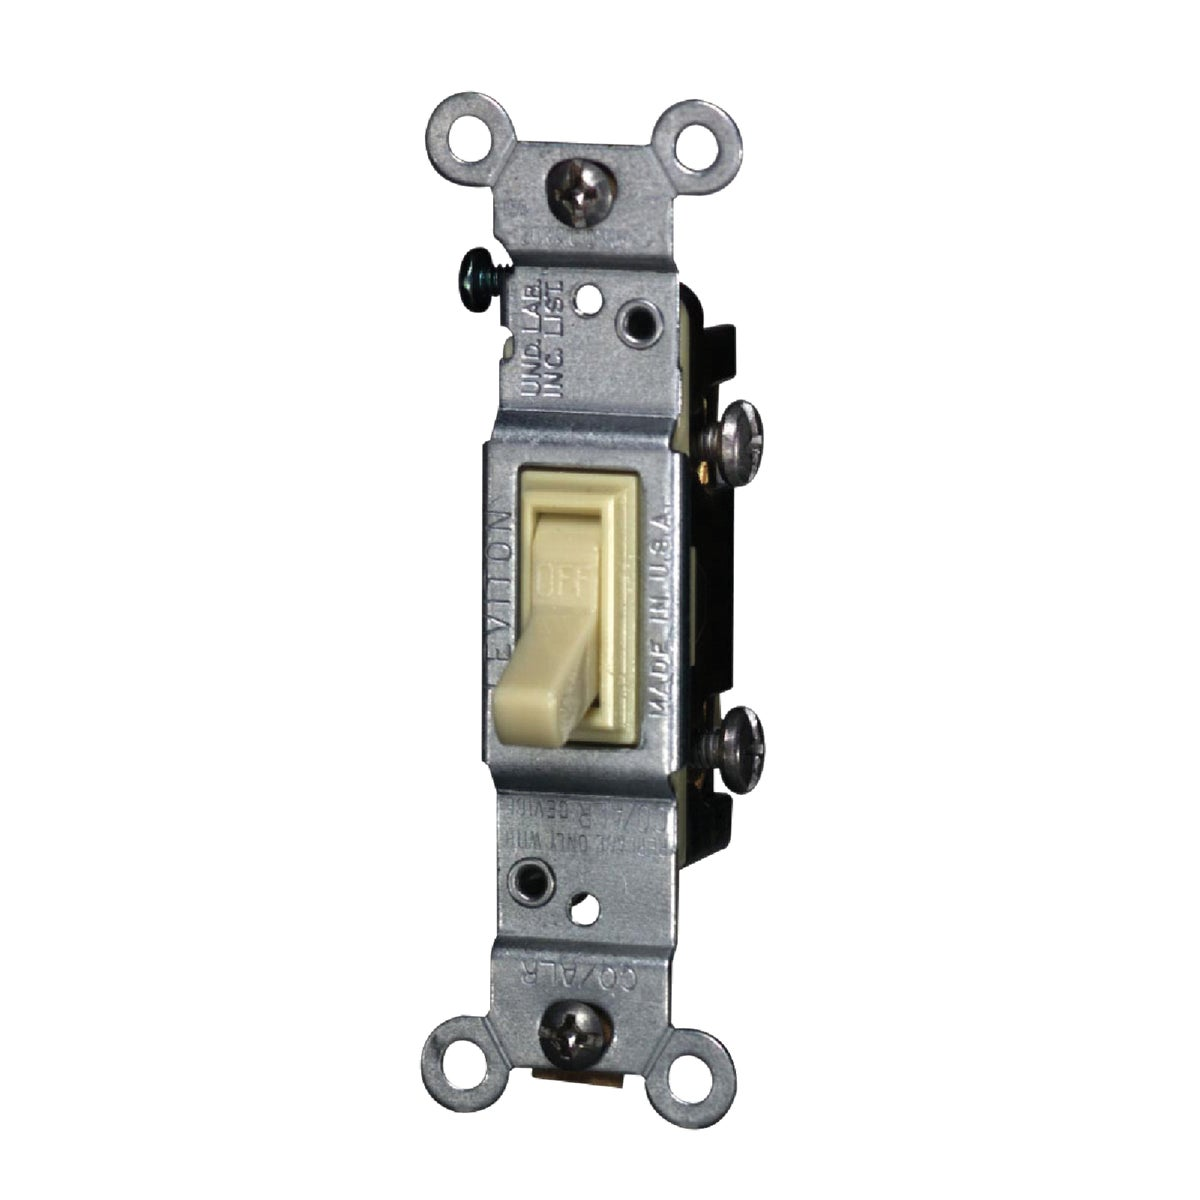 IV COPPER/ALUM SWITCH - 2651-2I by Leviton Mfg Co